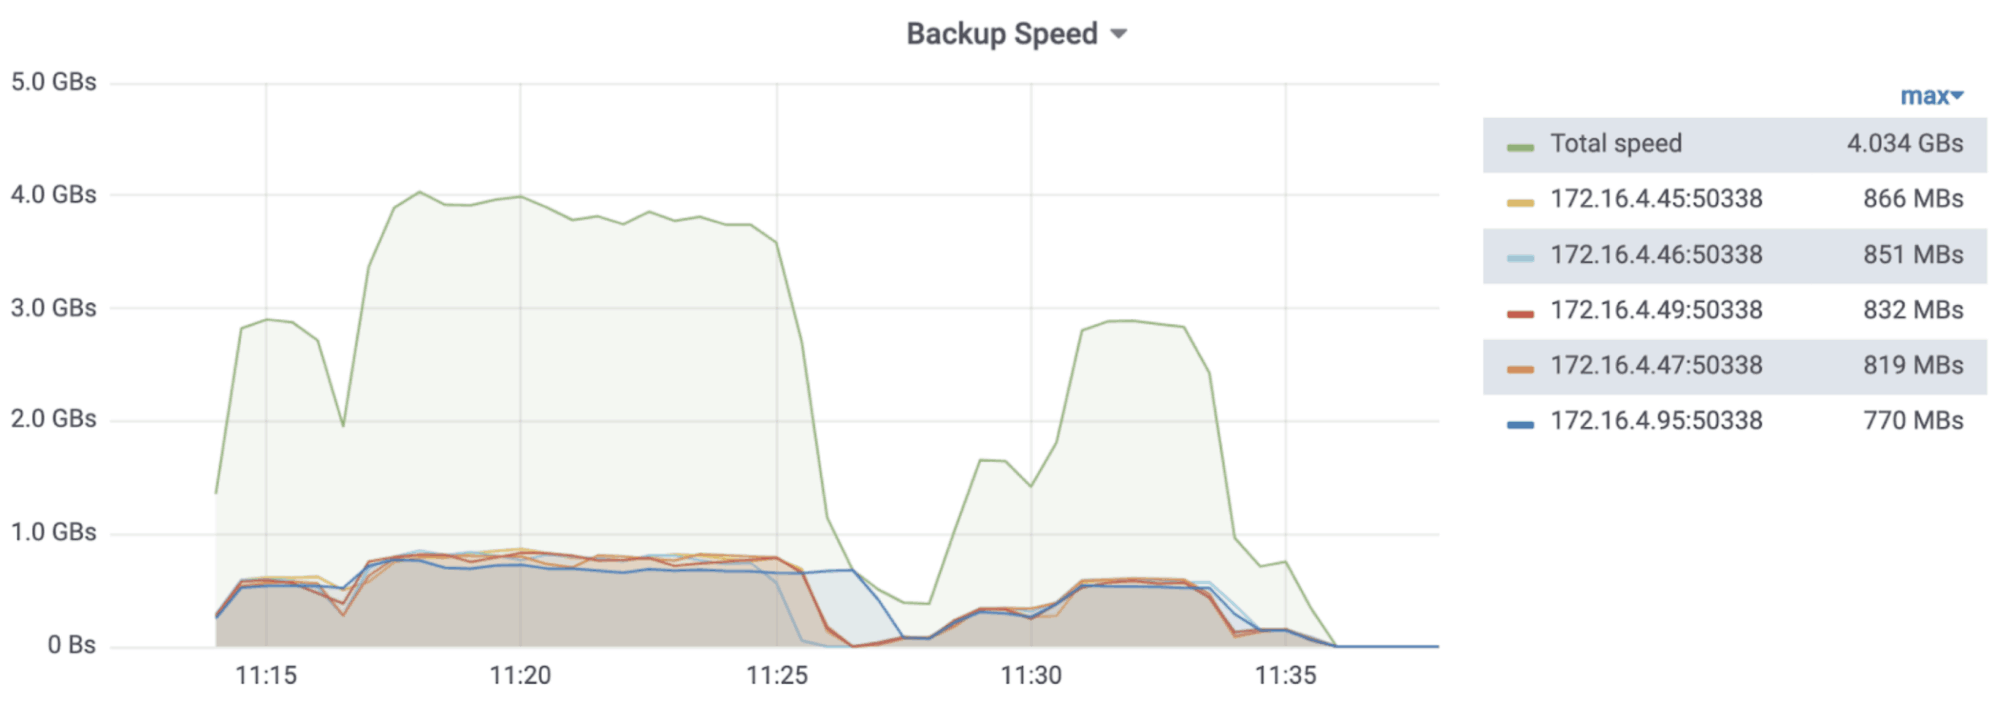 Backup speed